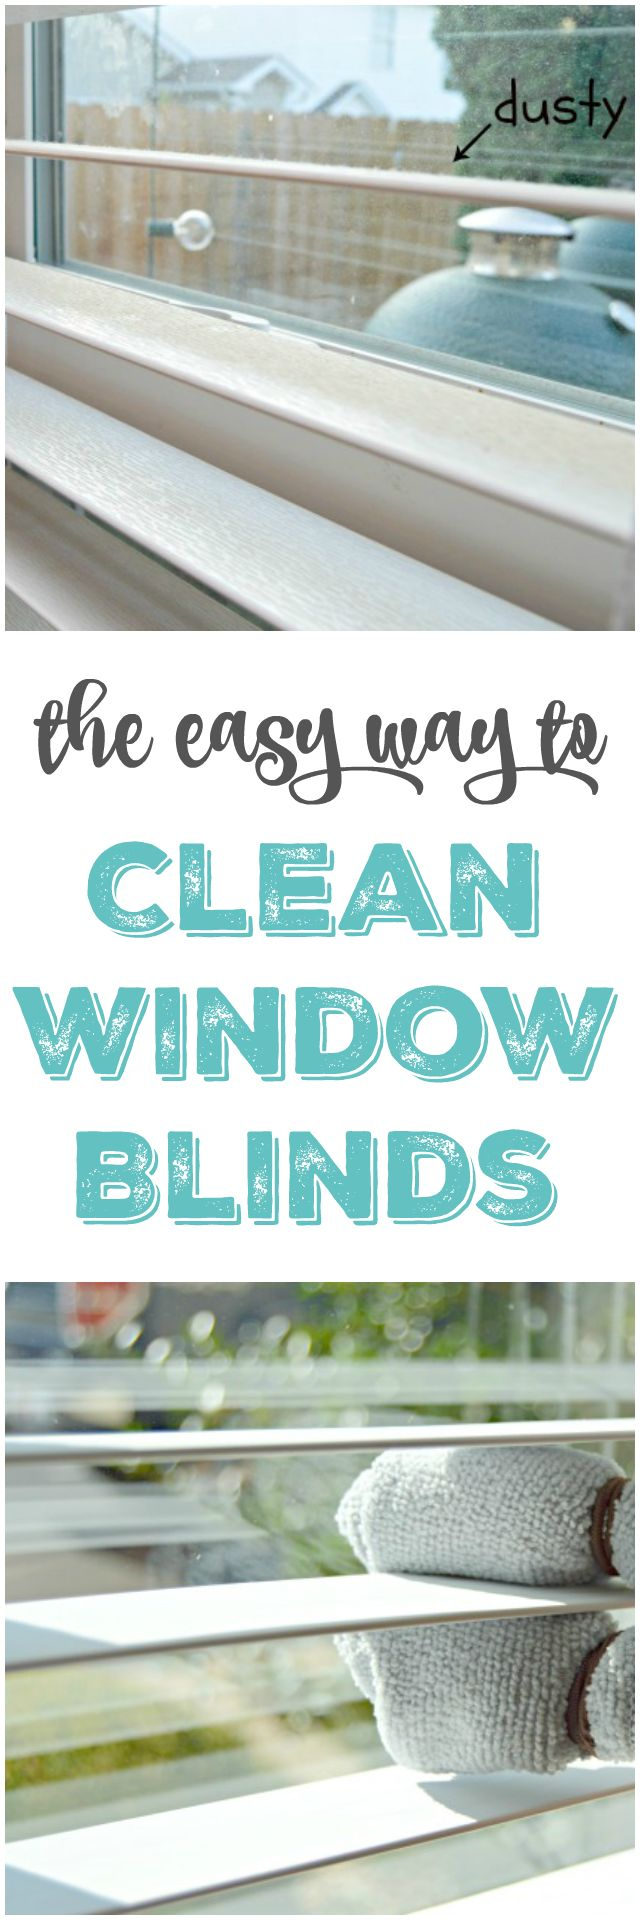 How To Clean Window Blinds Without Breaking Them